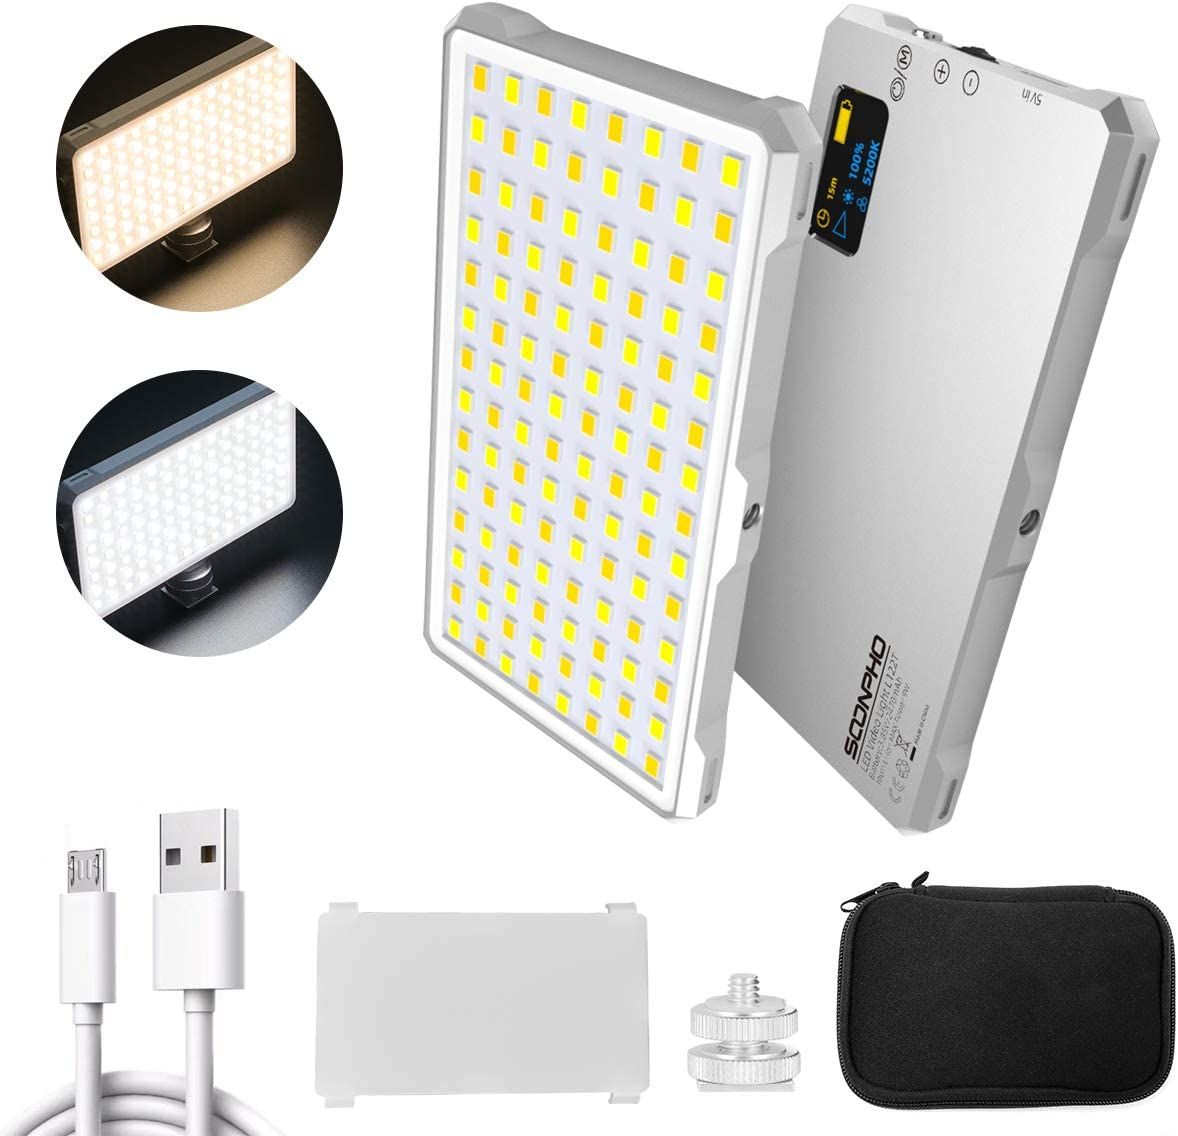 SUPON 112 LED Video Light, Dimmable Bi-Color 3200K-5600K Light Panel, Aluminum Body CRI96+ OLED Screen, Built-in Rechargeable Battery with Transparent Filter for YouTube DSLR Studio Outdoor Video